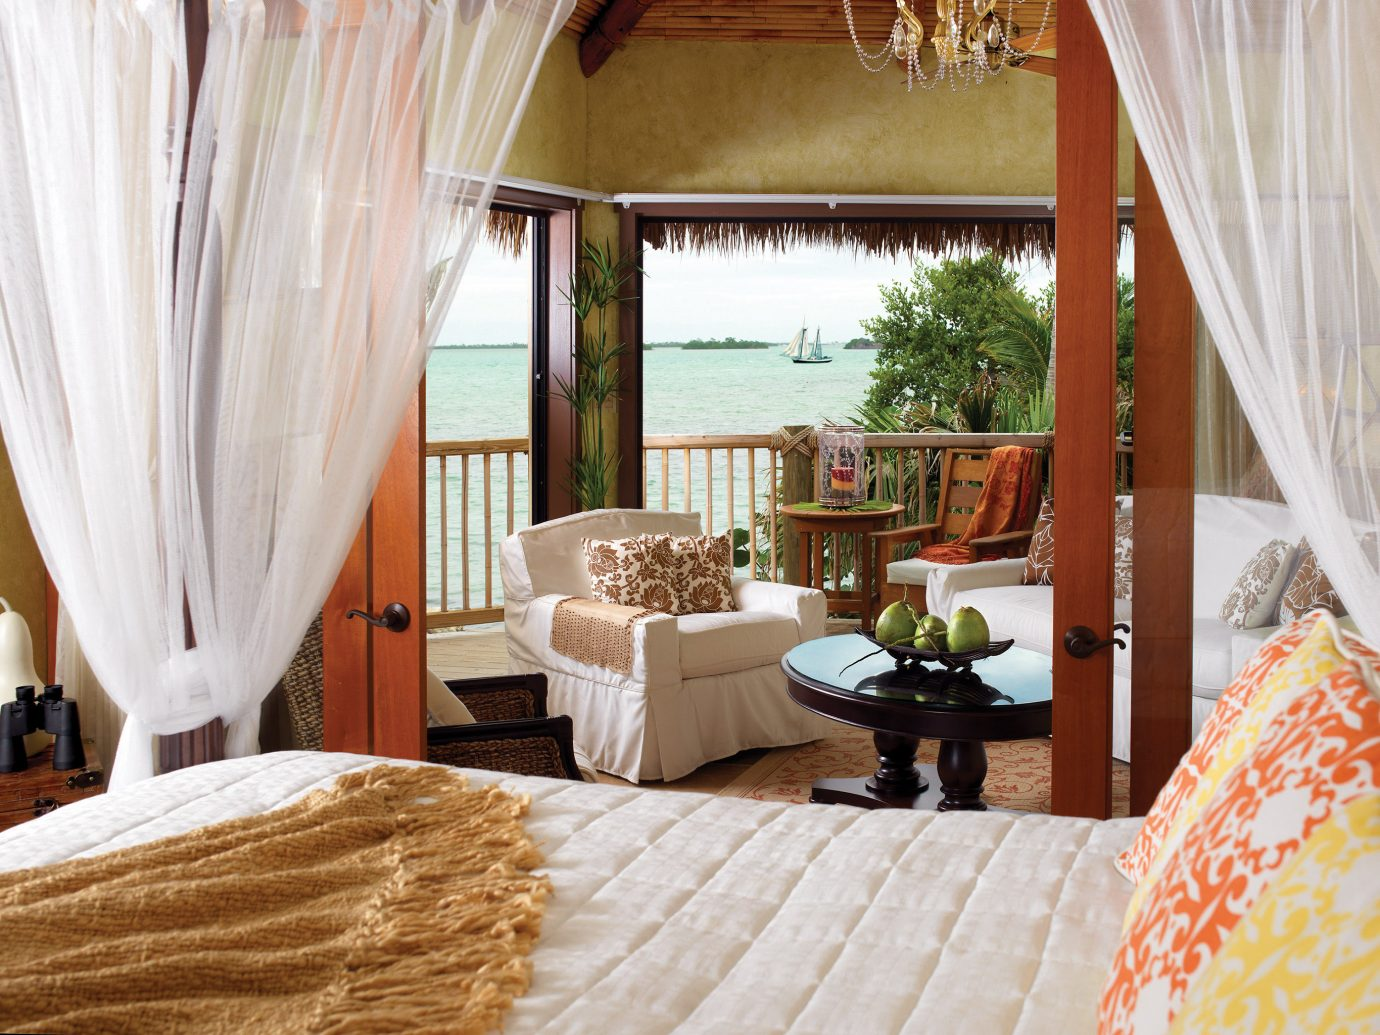 Beach Beachfront Bedroom Hotels Island Resort Romance Romantic Scenic views Waterfront indoor curtain bed room property interior design cottage home Suite estate Villa living room real estate farmhouse furniture decorated